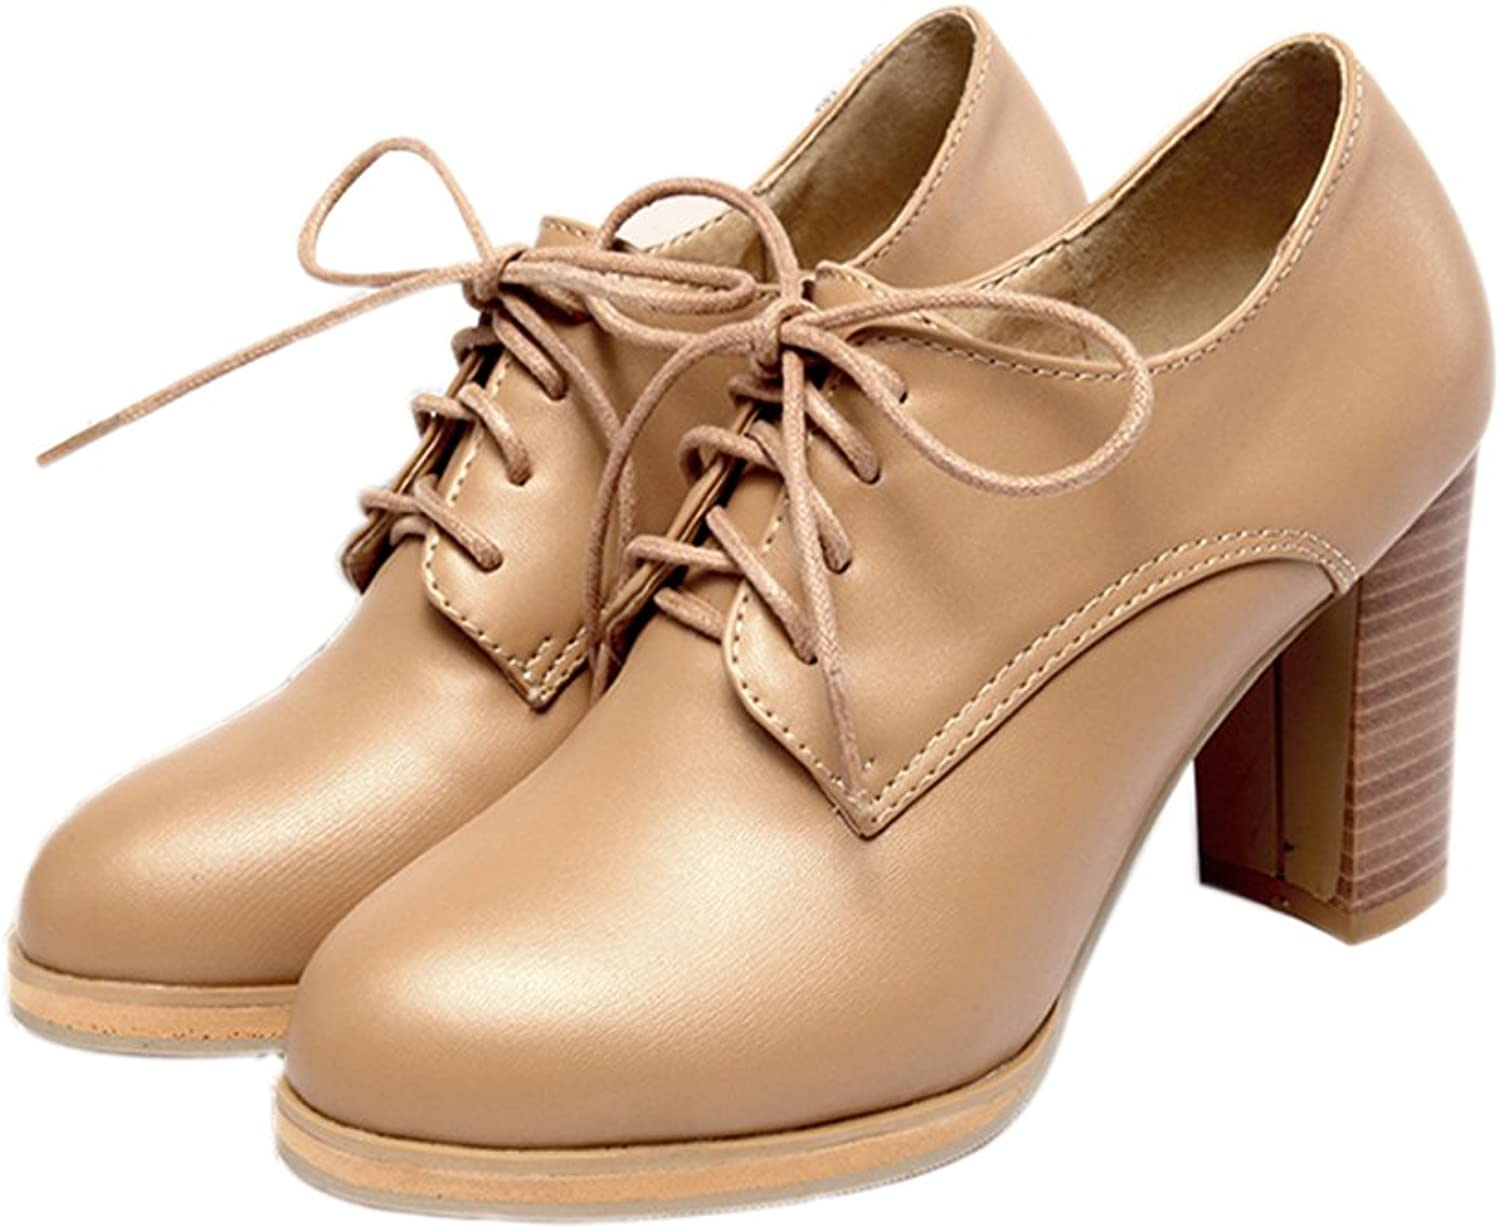 Lucksender Womens Round Toe High Chunky Heel Lace Up Comfort Oxford shoes